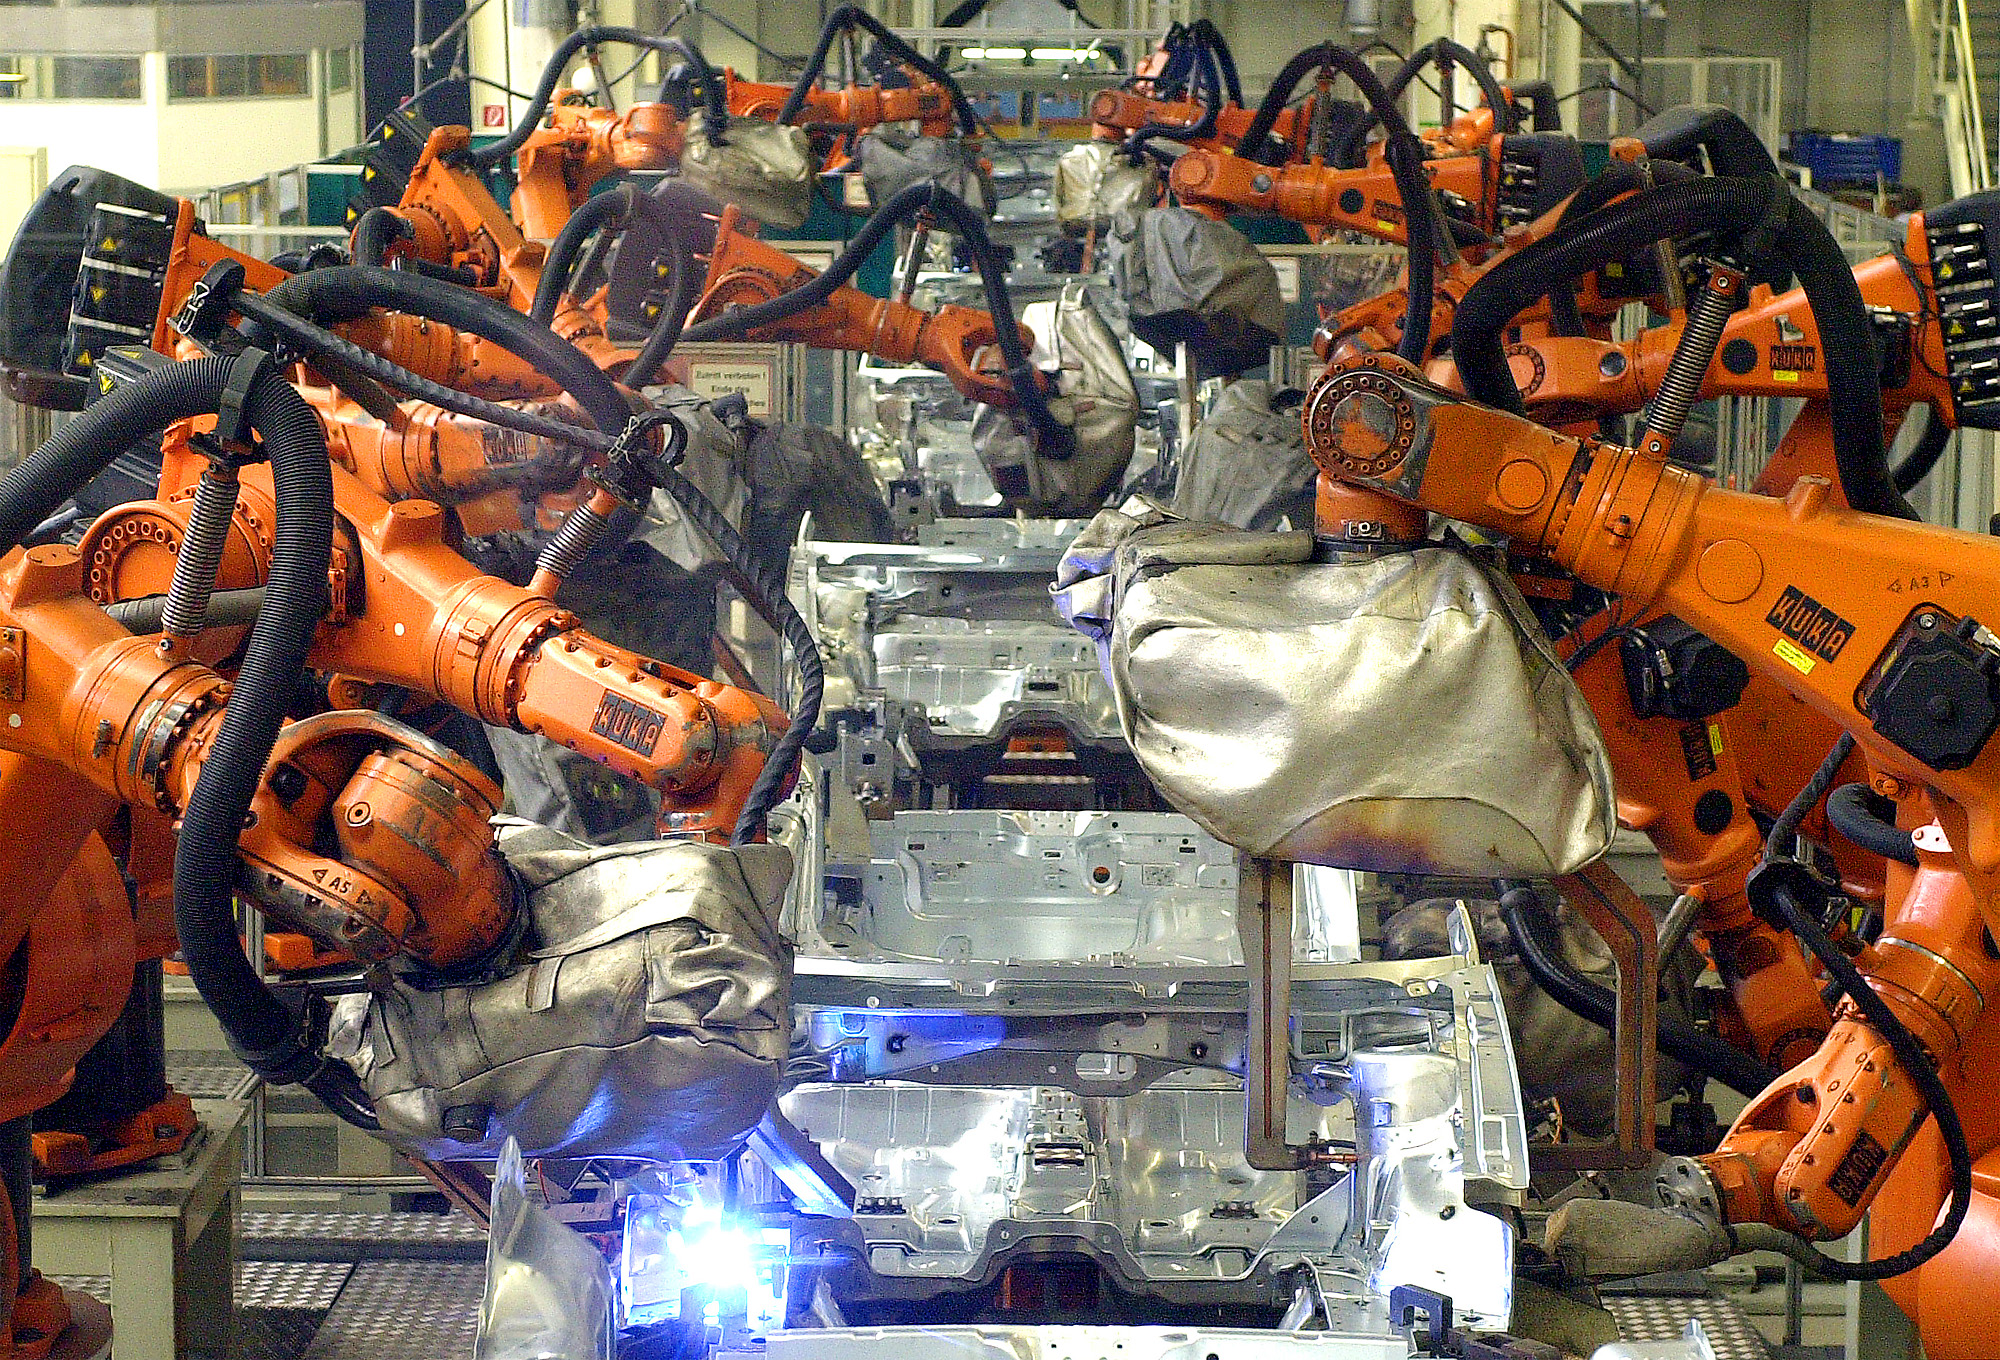 Welding robots at the production line at the plant of German carmaker Volkswagen in Wolfsburg, northern Germany, in this March 4, 2002 picture. A spokesperson of Volkswagen said on Friday, June 20, 2003, it has to halt production in its main factory in Wolfsburg next week as a result of the ongoing strikes in eastern Germany, that block supplying companies. (AP Photo/Fabian Bimmer)